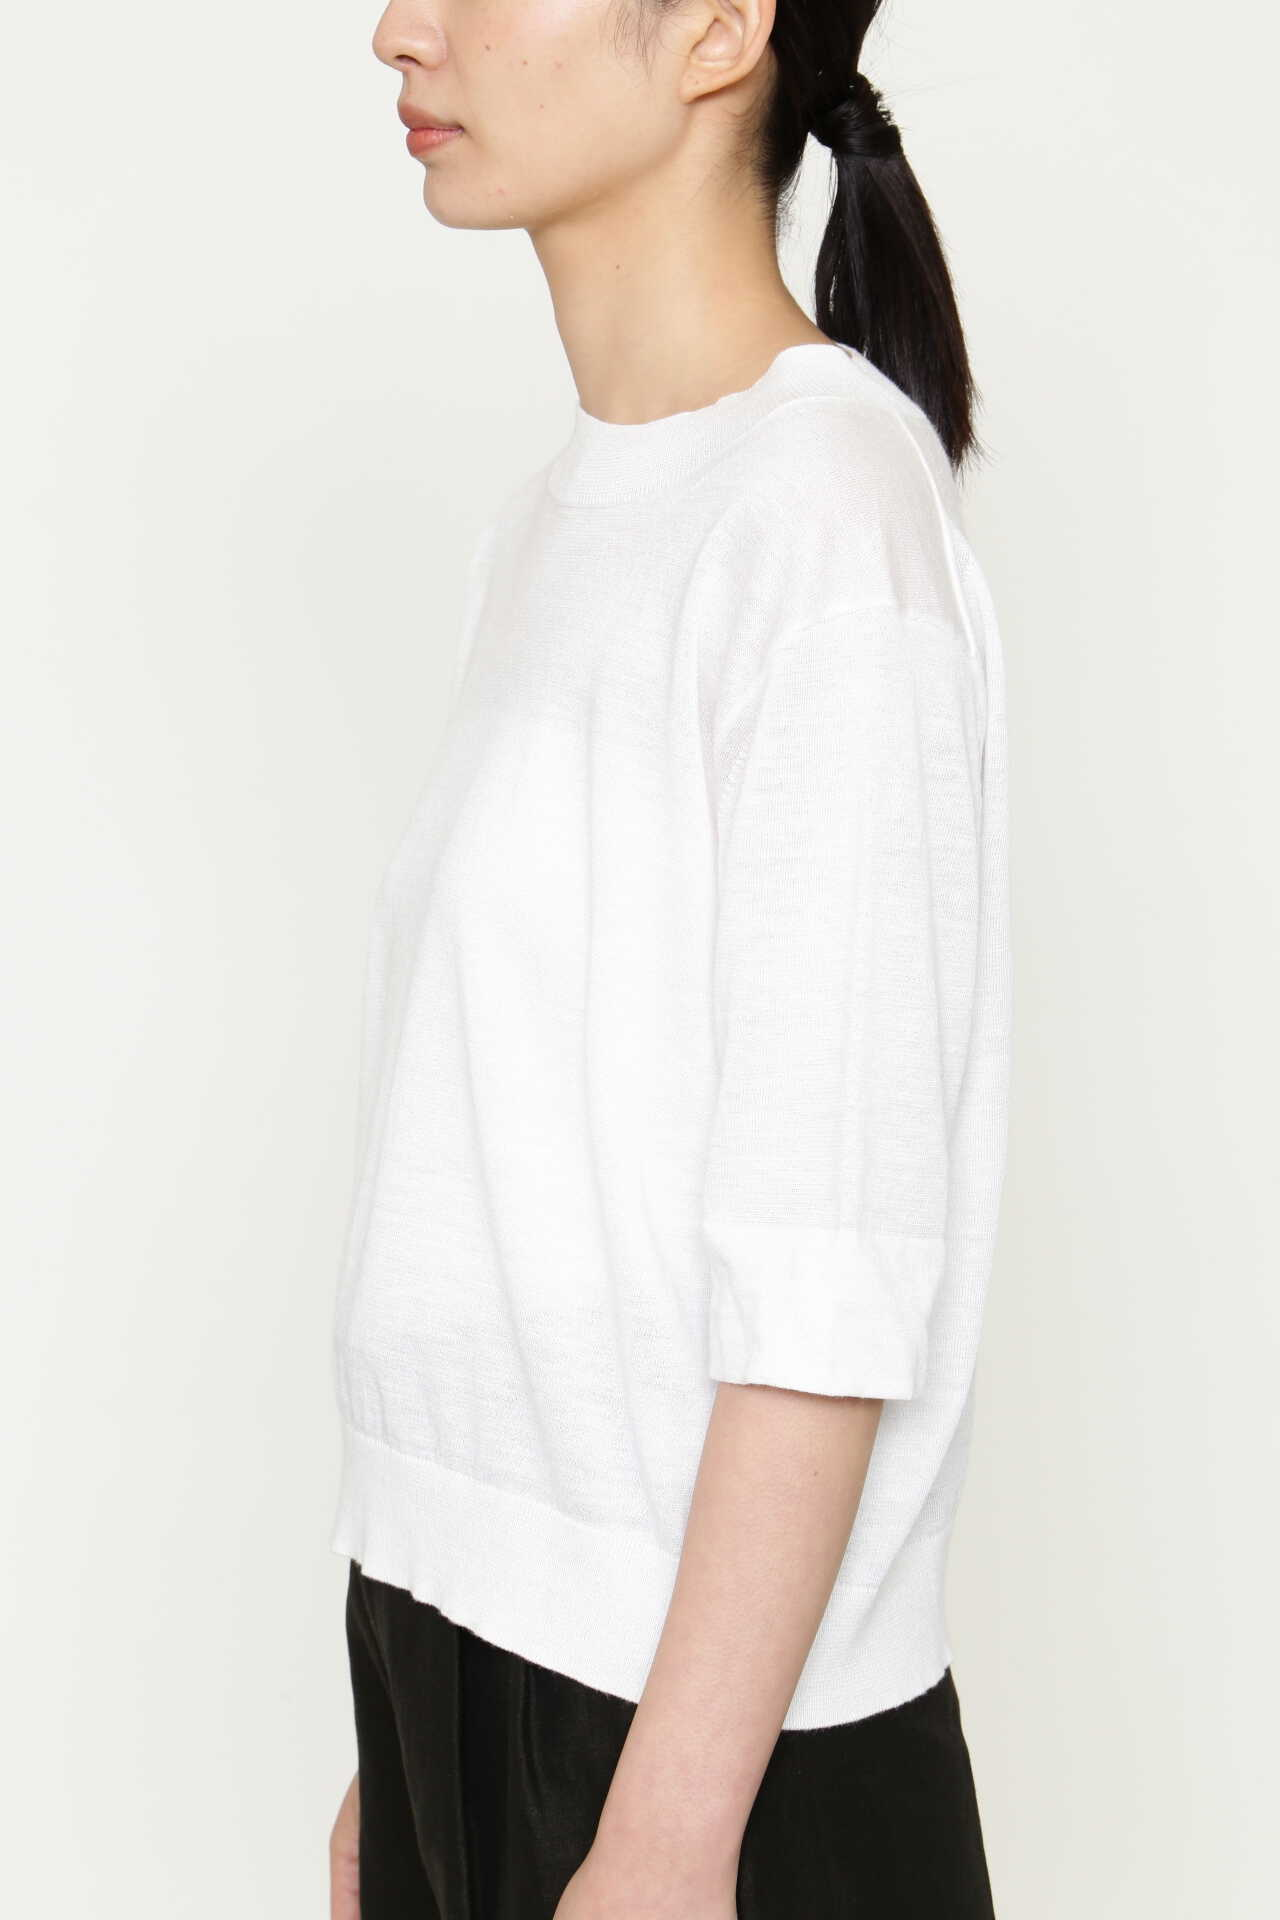 RAMIE COTTON DEEP RIB T SHIRT7